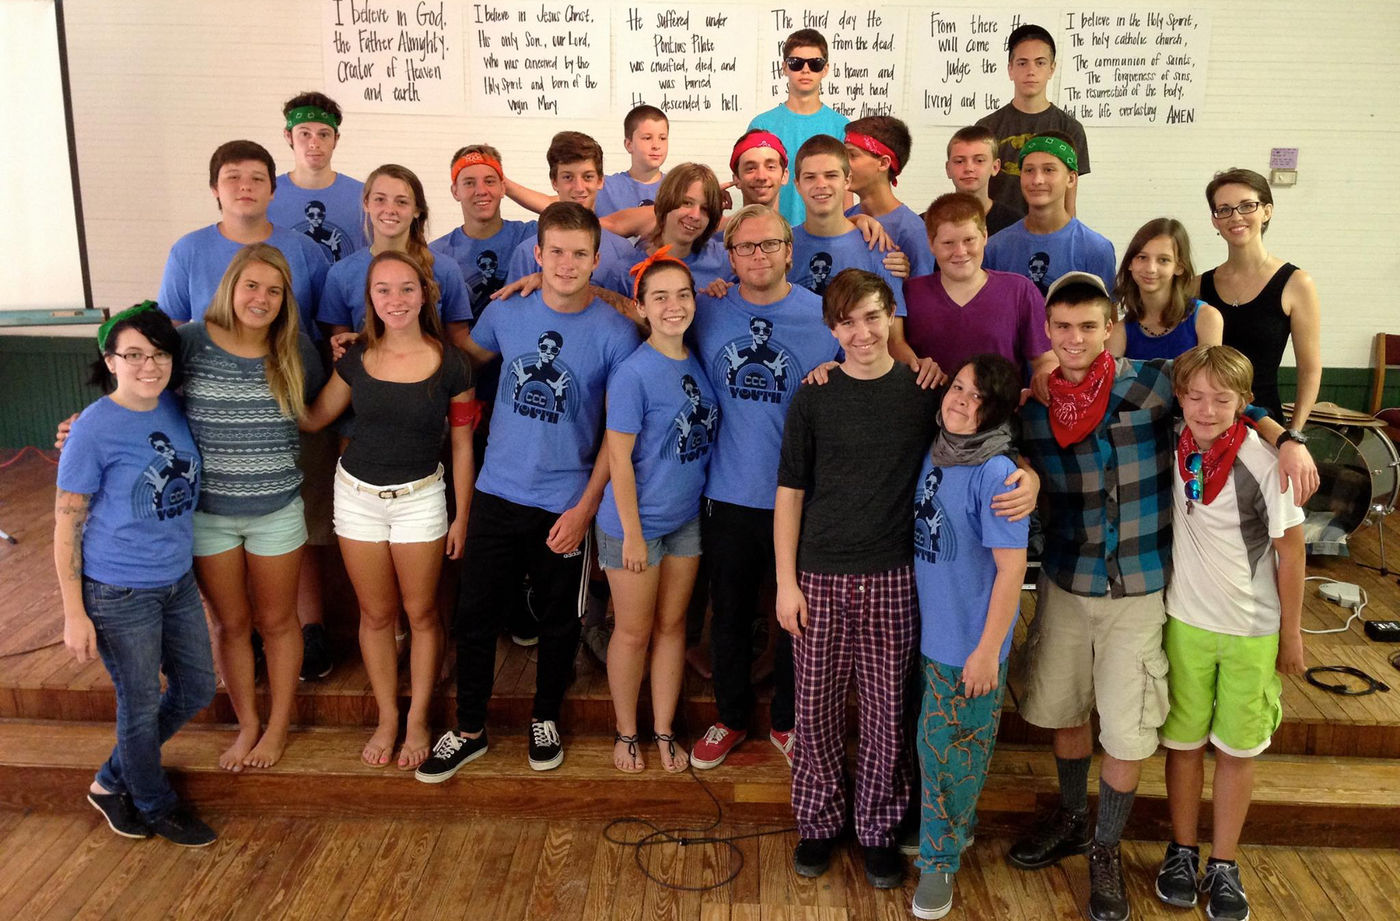 Daytona Beach Church Youth (cropped)